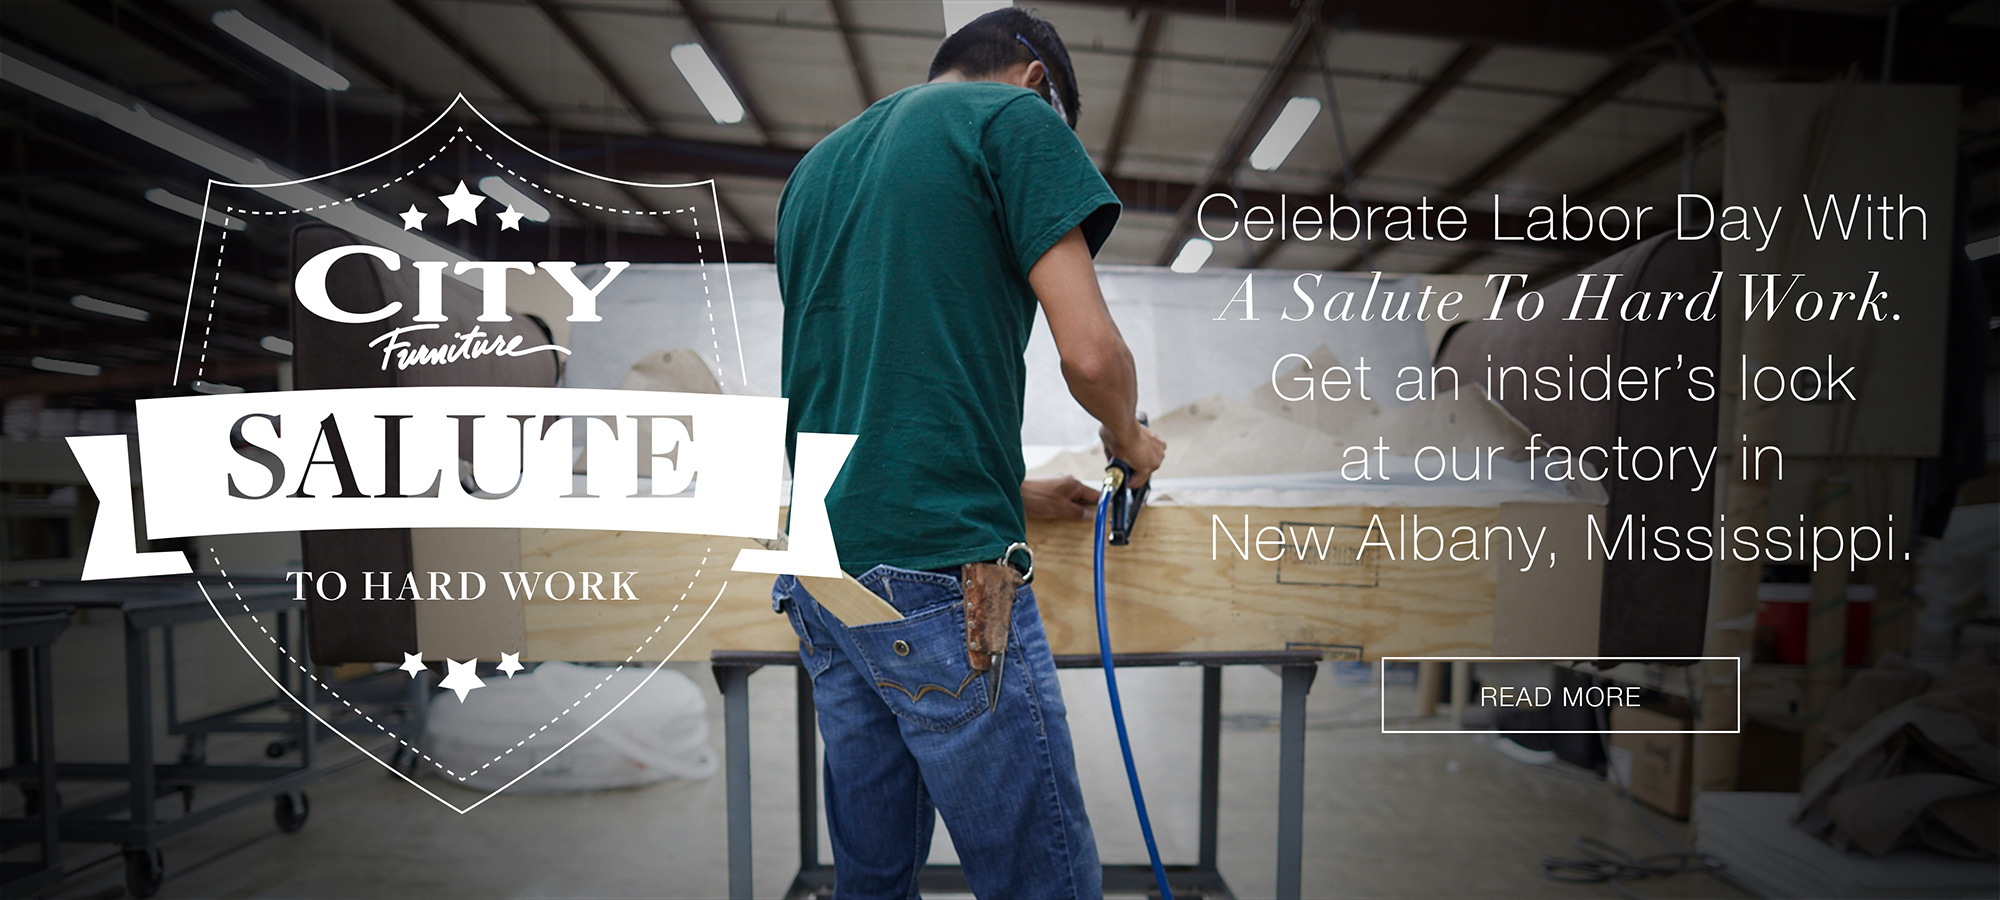 Read more about Our Factory in New Albany, Mississippi